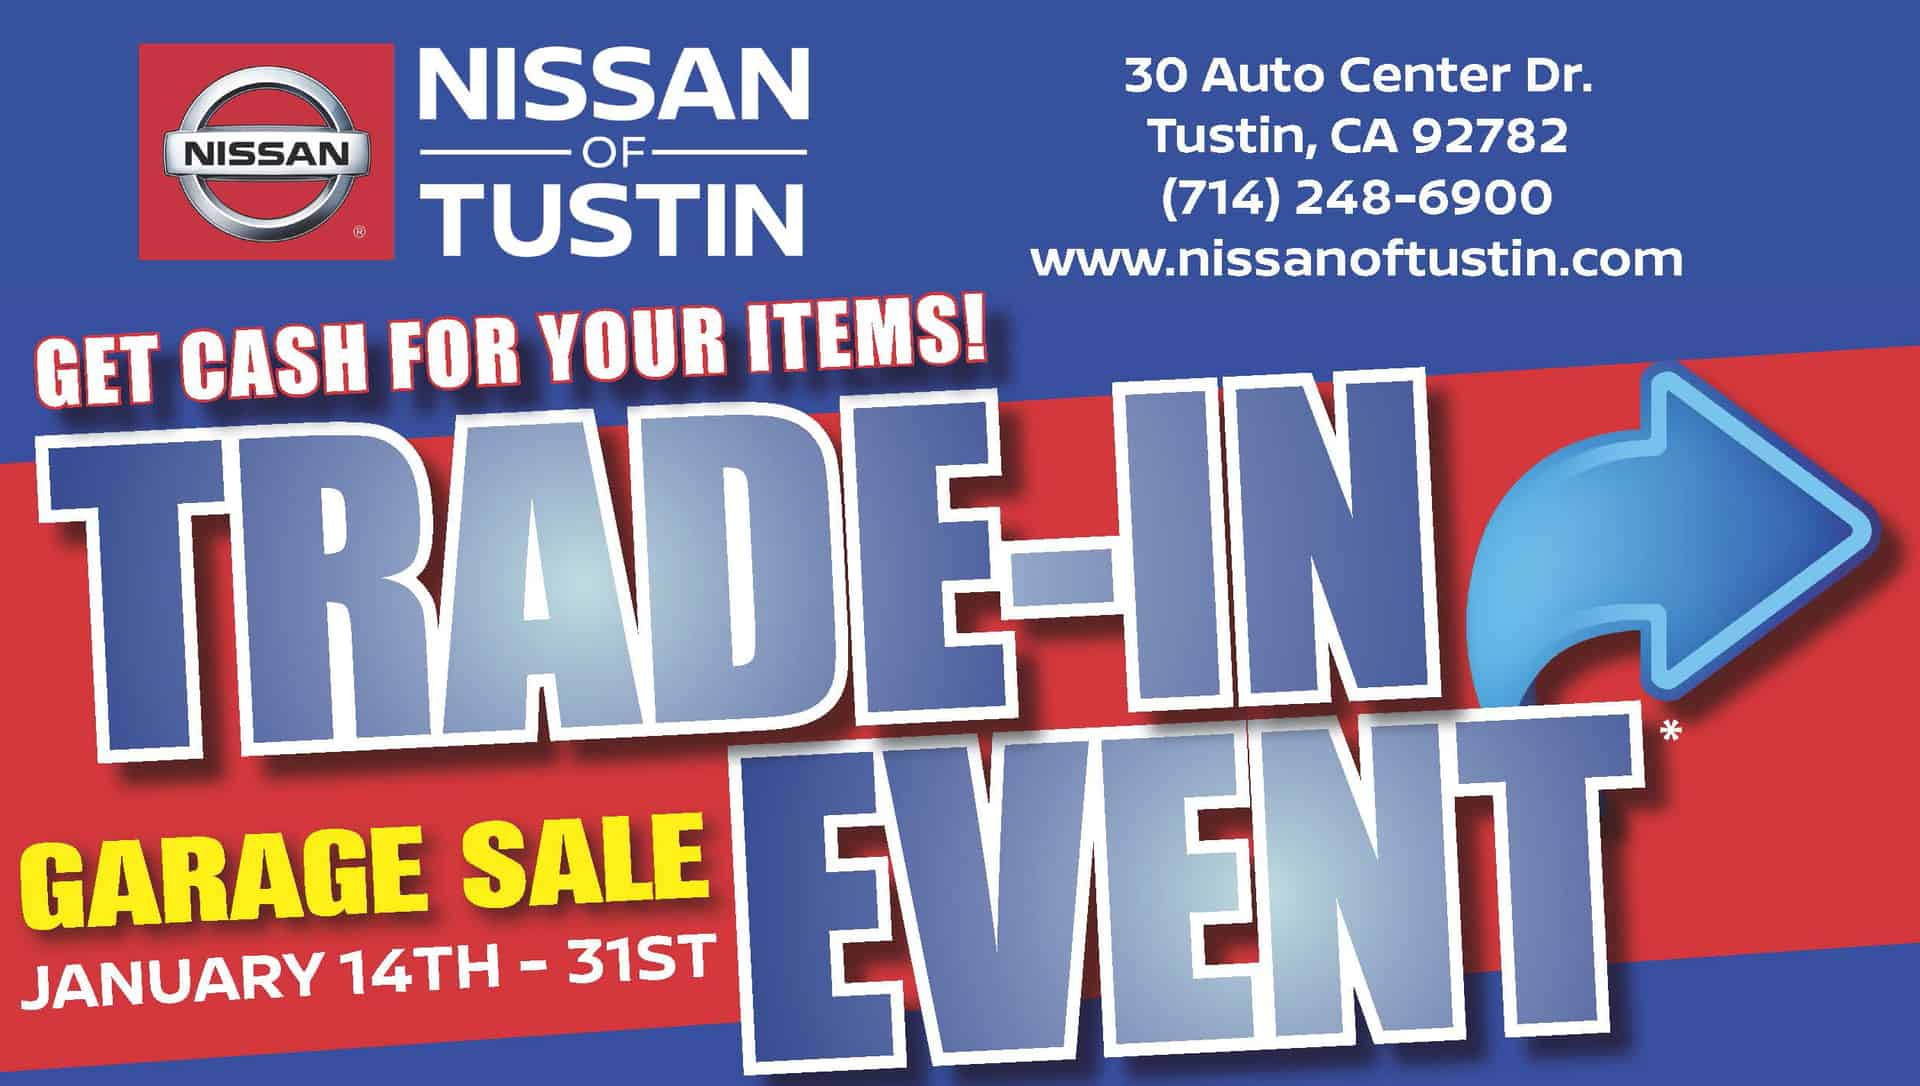 Don't miss the Garage Sale Trade-In Event in Tustin CA